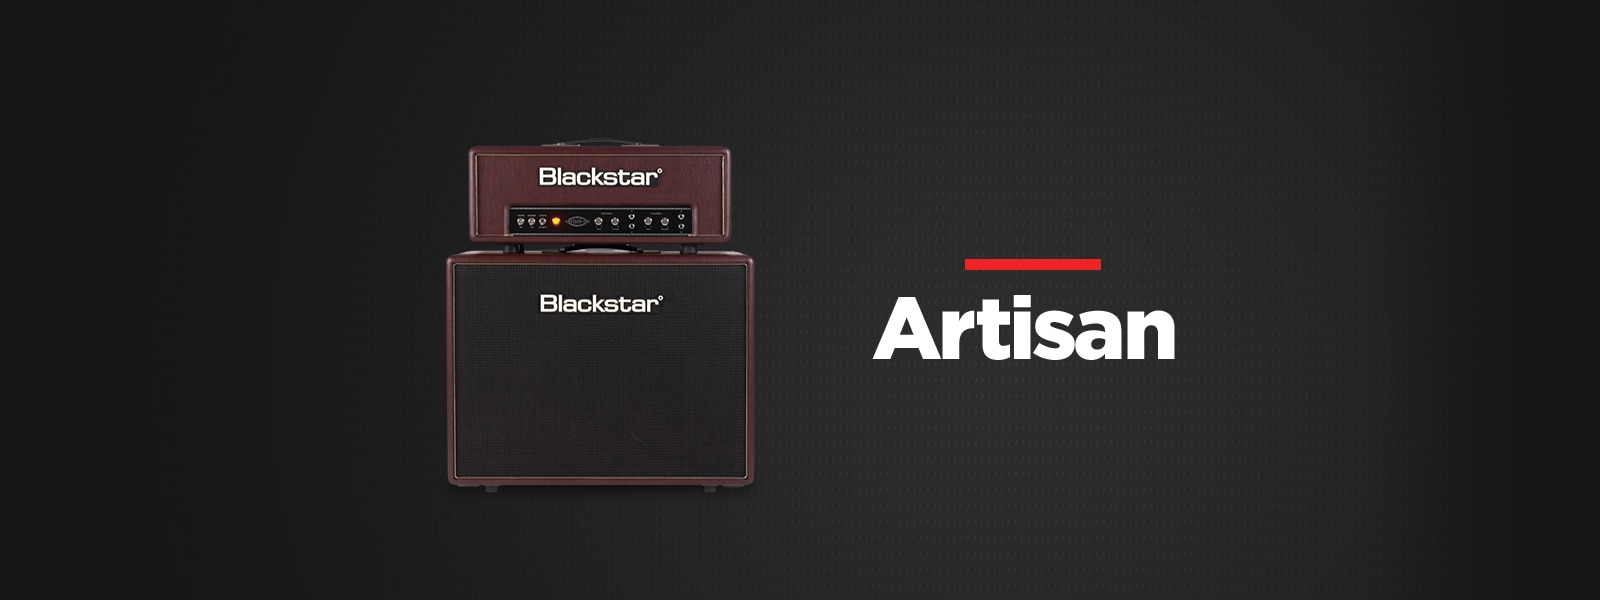 Blackstar Artison Amplifiers